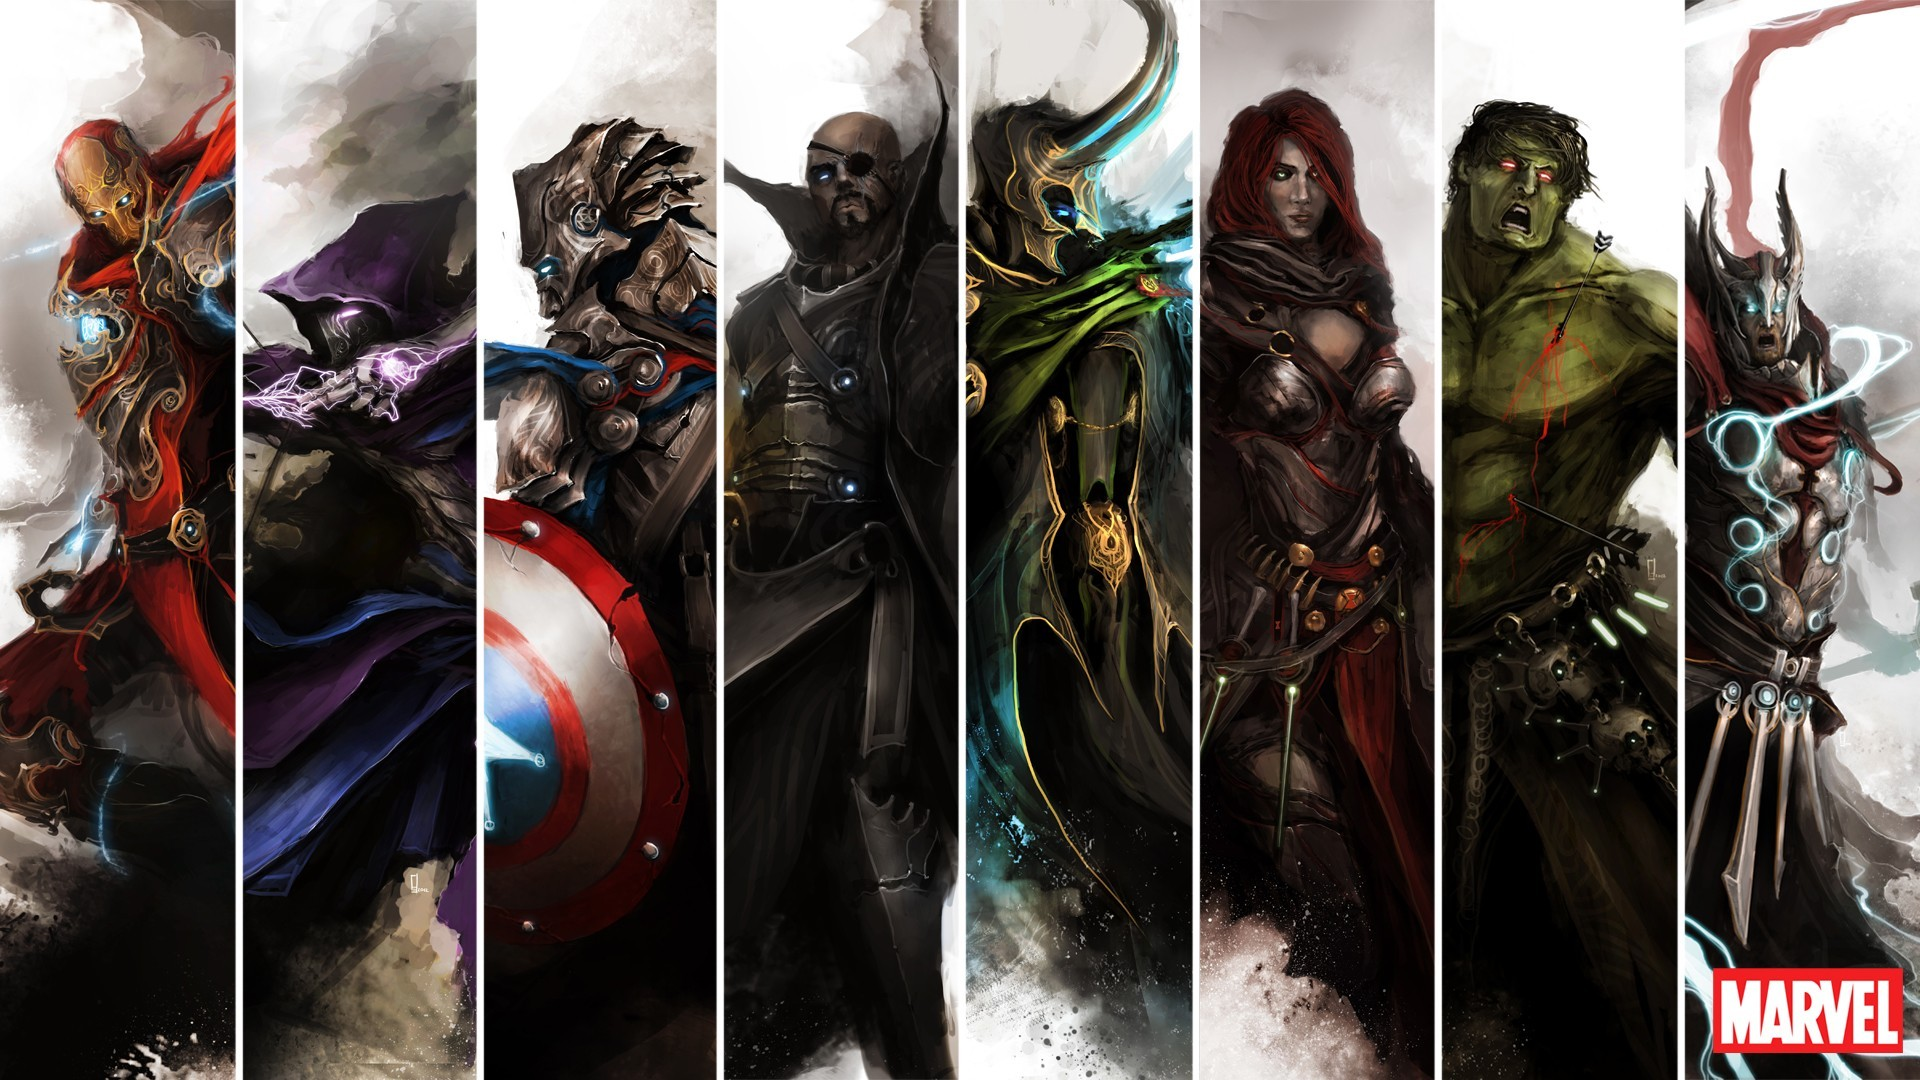 43 Marvel Wallpapers 1 Download Free Stunning Full HD